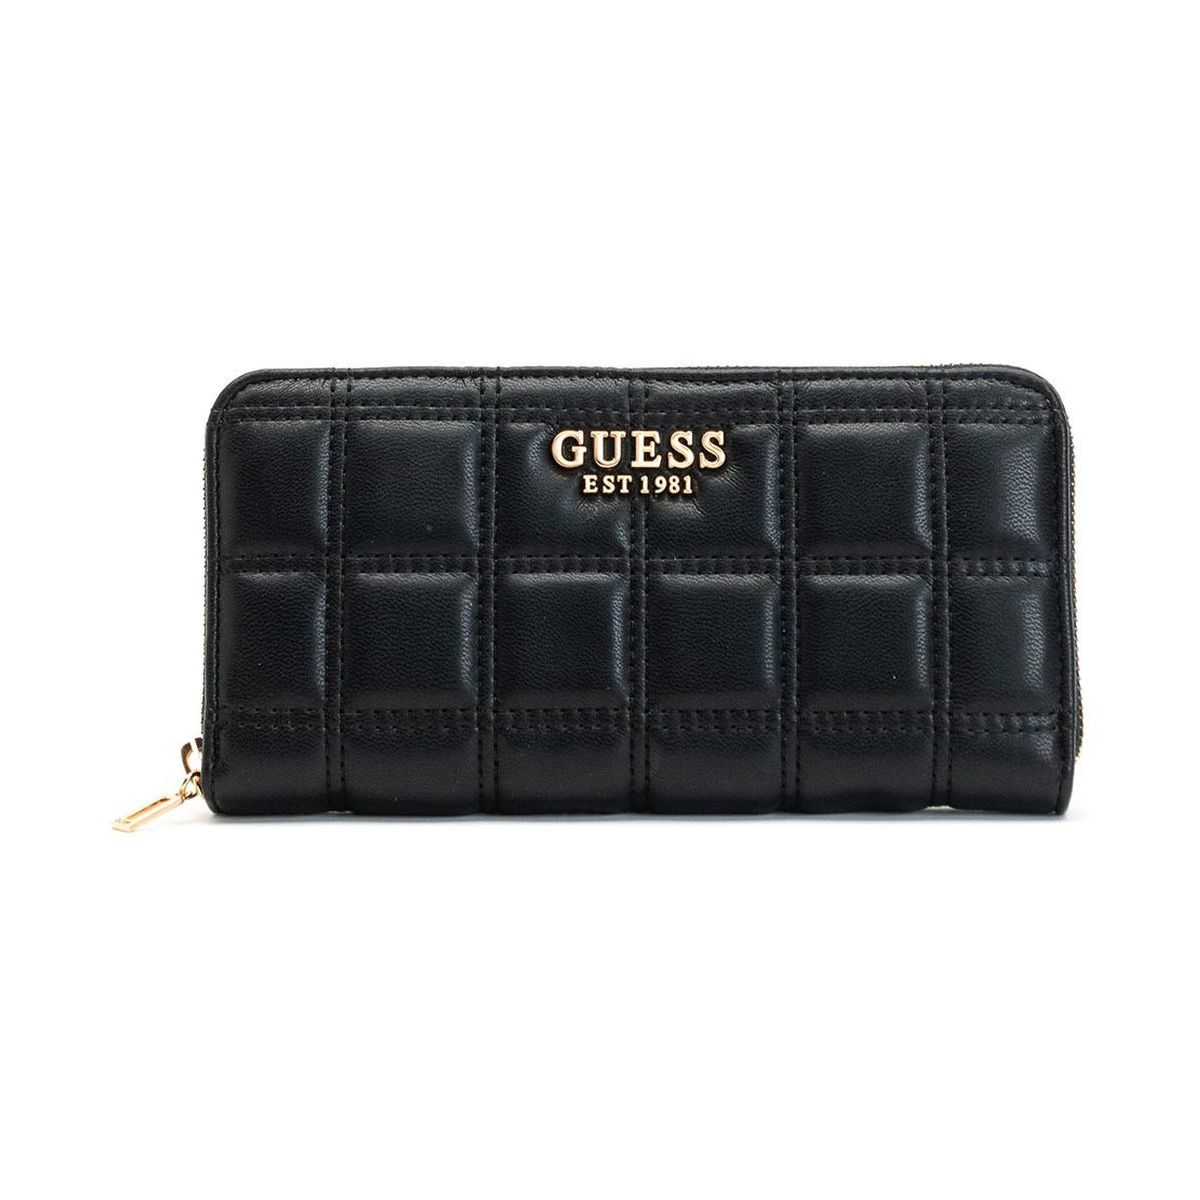 Guess femme kamina slg large zip around noir1336001_2